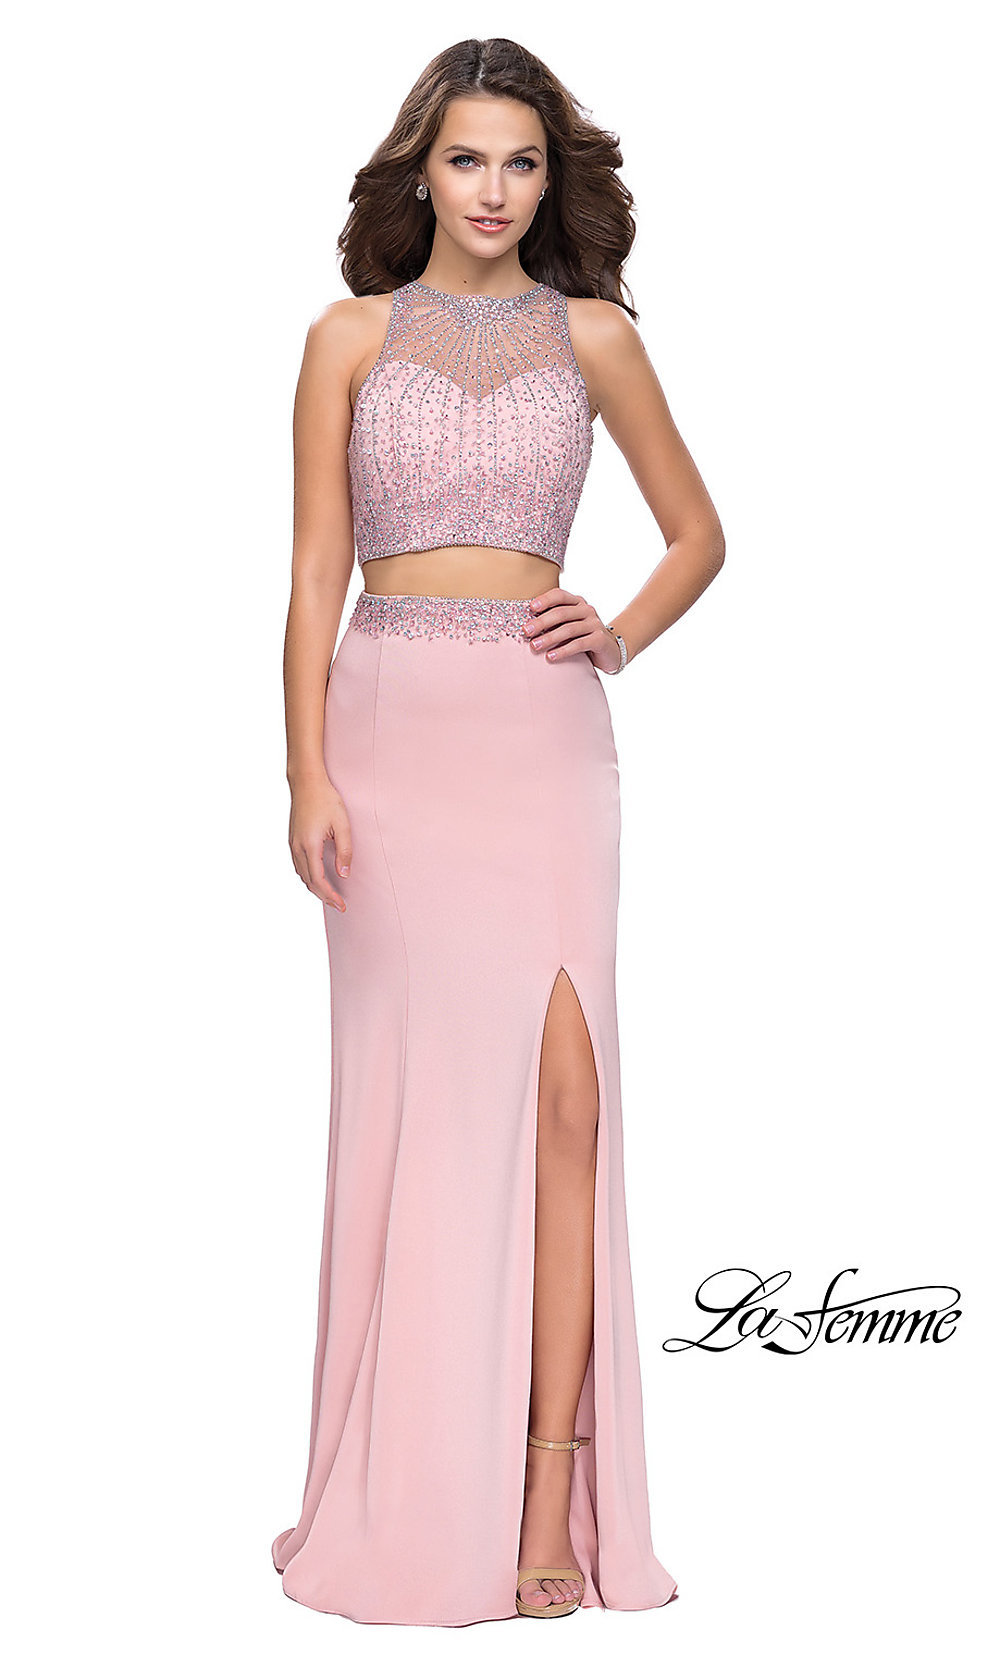 53136d1299b Long Two-Piece La Femme Prom Dress with Illusion